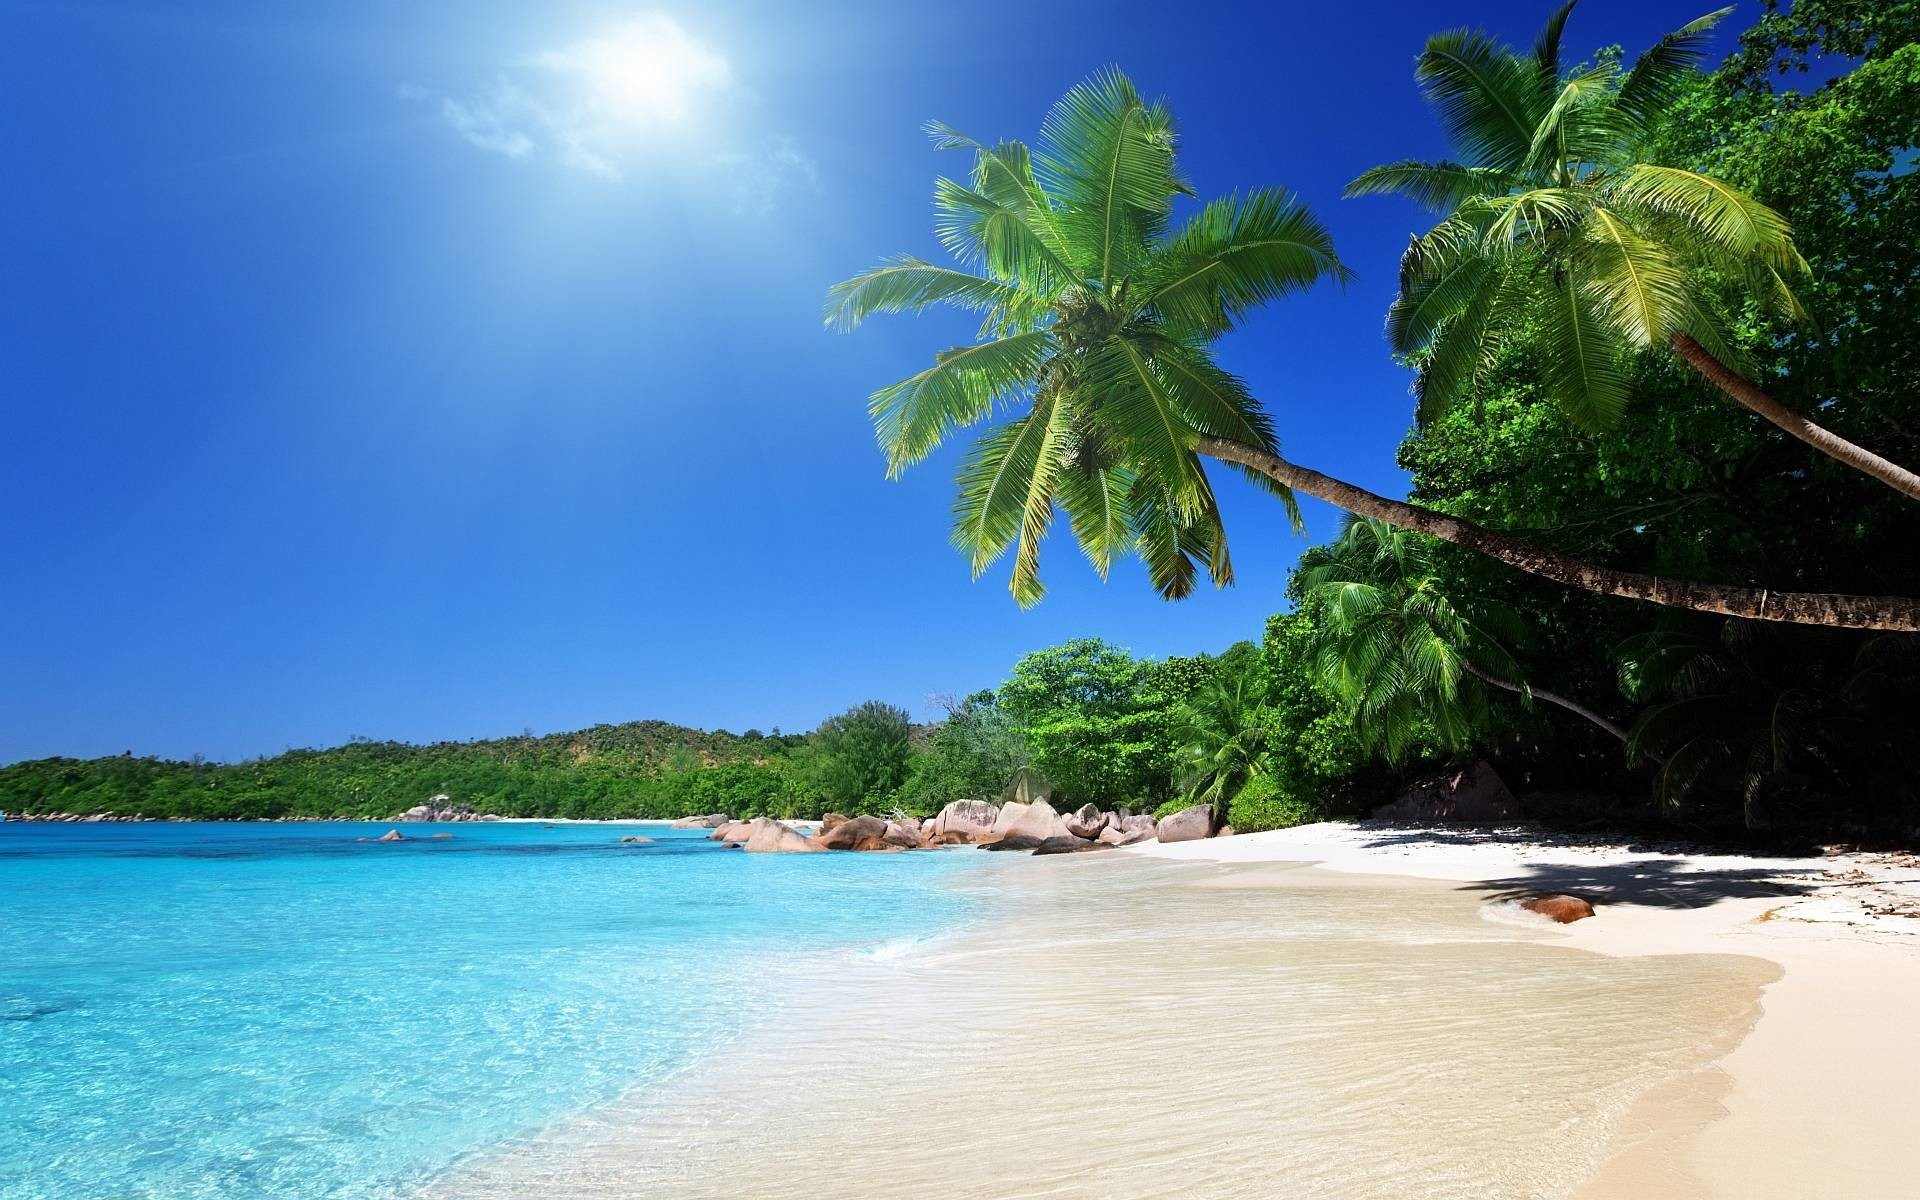 beautiful beaches wallpaper (43+ images)